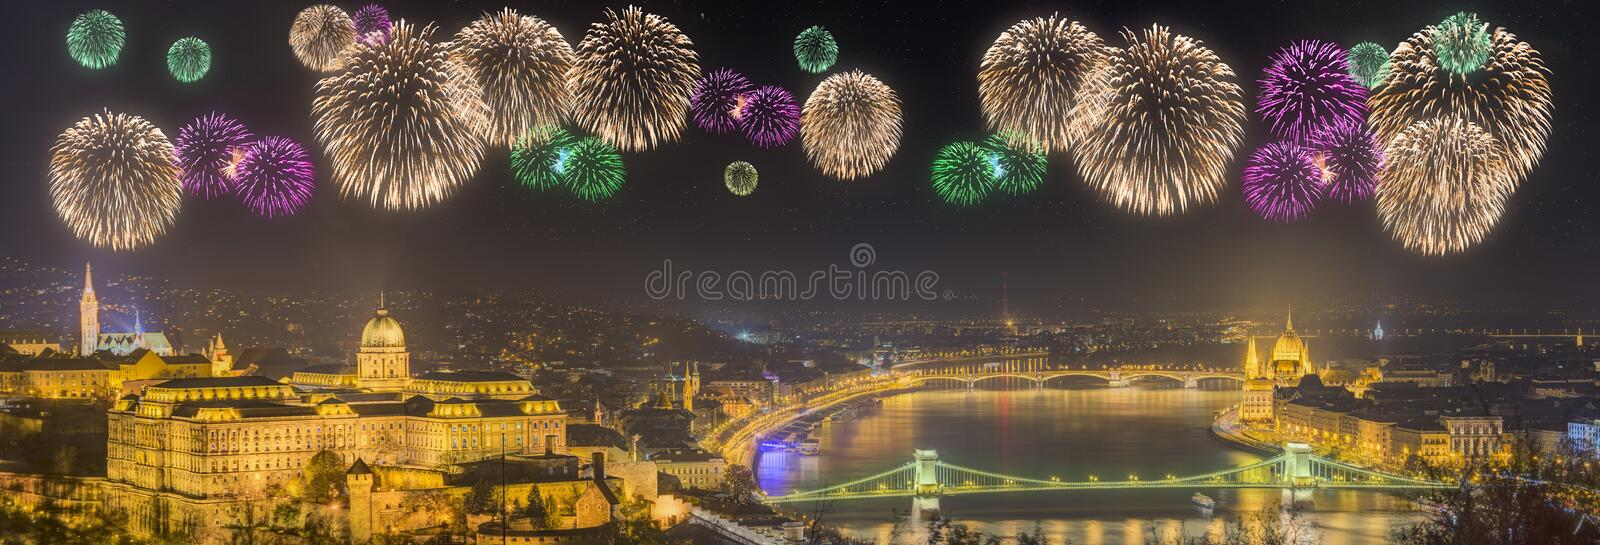 Beautiful fireworks under and cityscape of Budapest. Hungary, with the Chain Bridge, Parliament and Buda Castle royalty free stock images